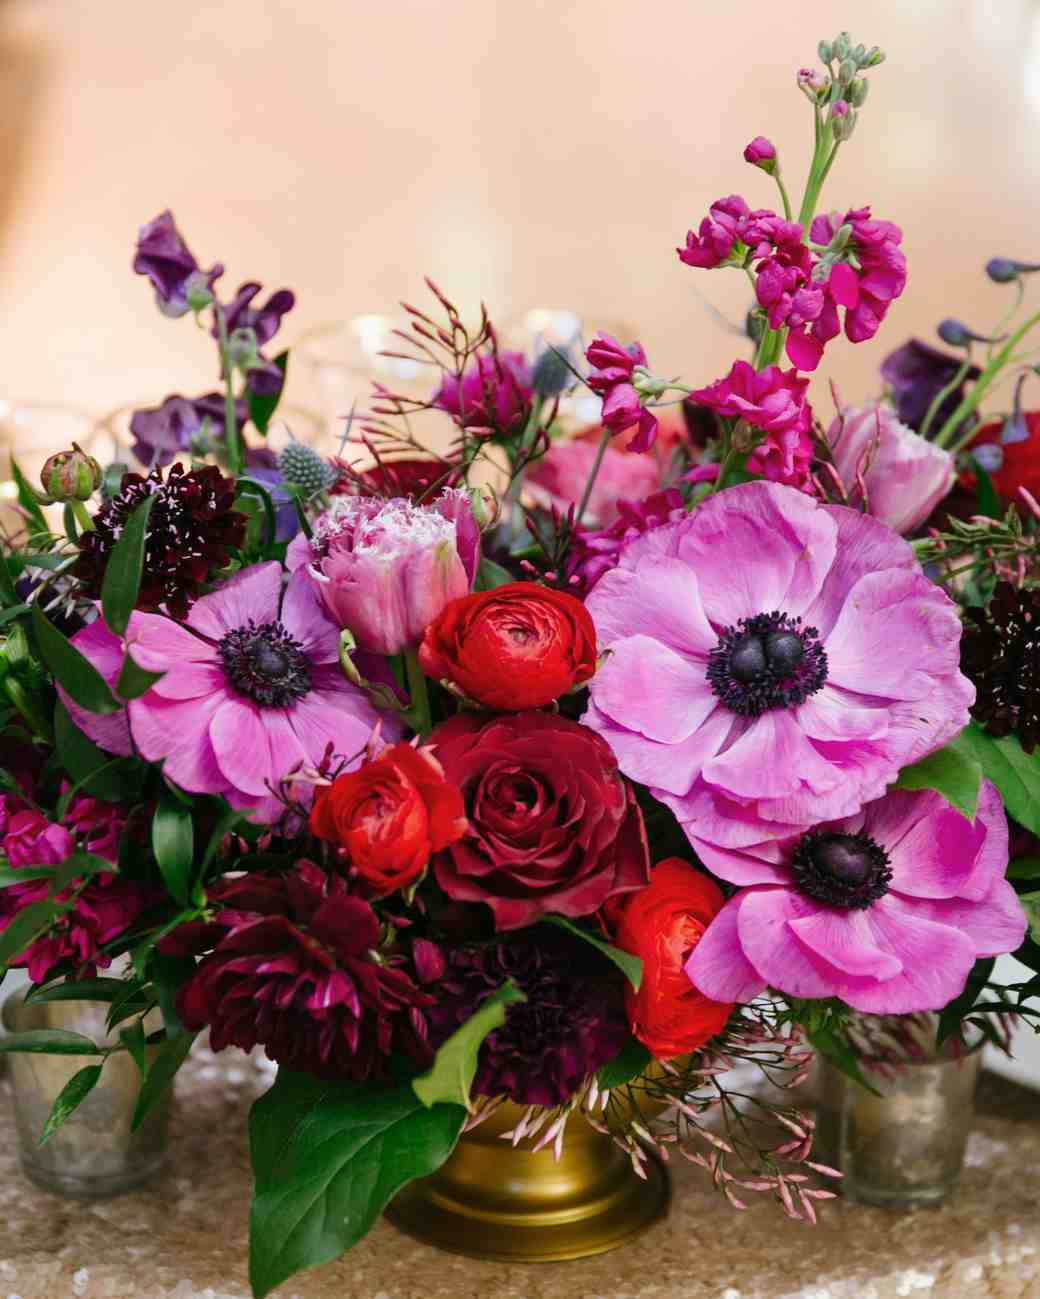 Jewel toned wedding centerpieces that will dazzle your guests jewel toned wedding centerpieces that will dazzle your guests martha stewart weddings izmirmasajfo Images